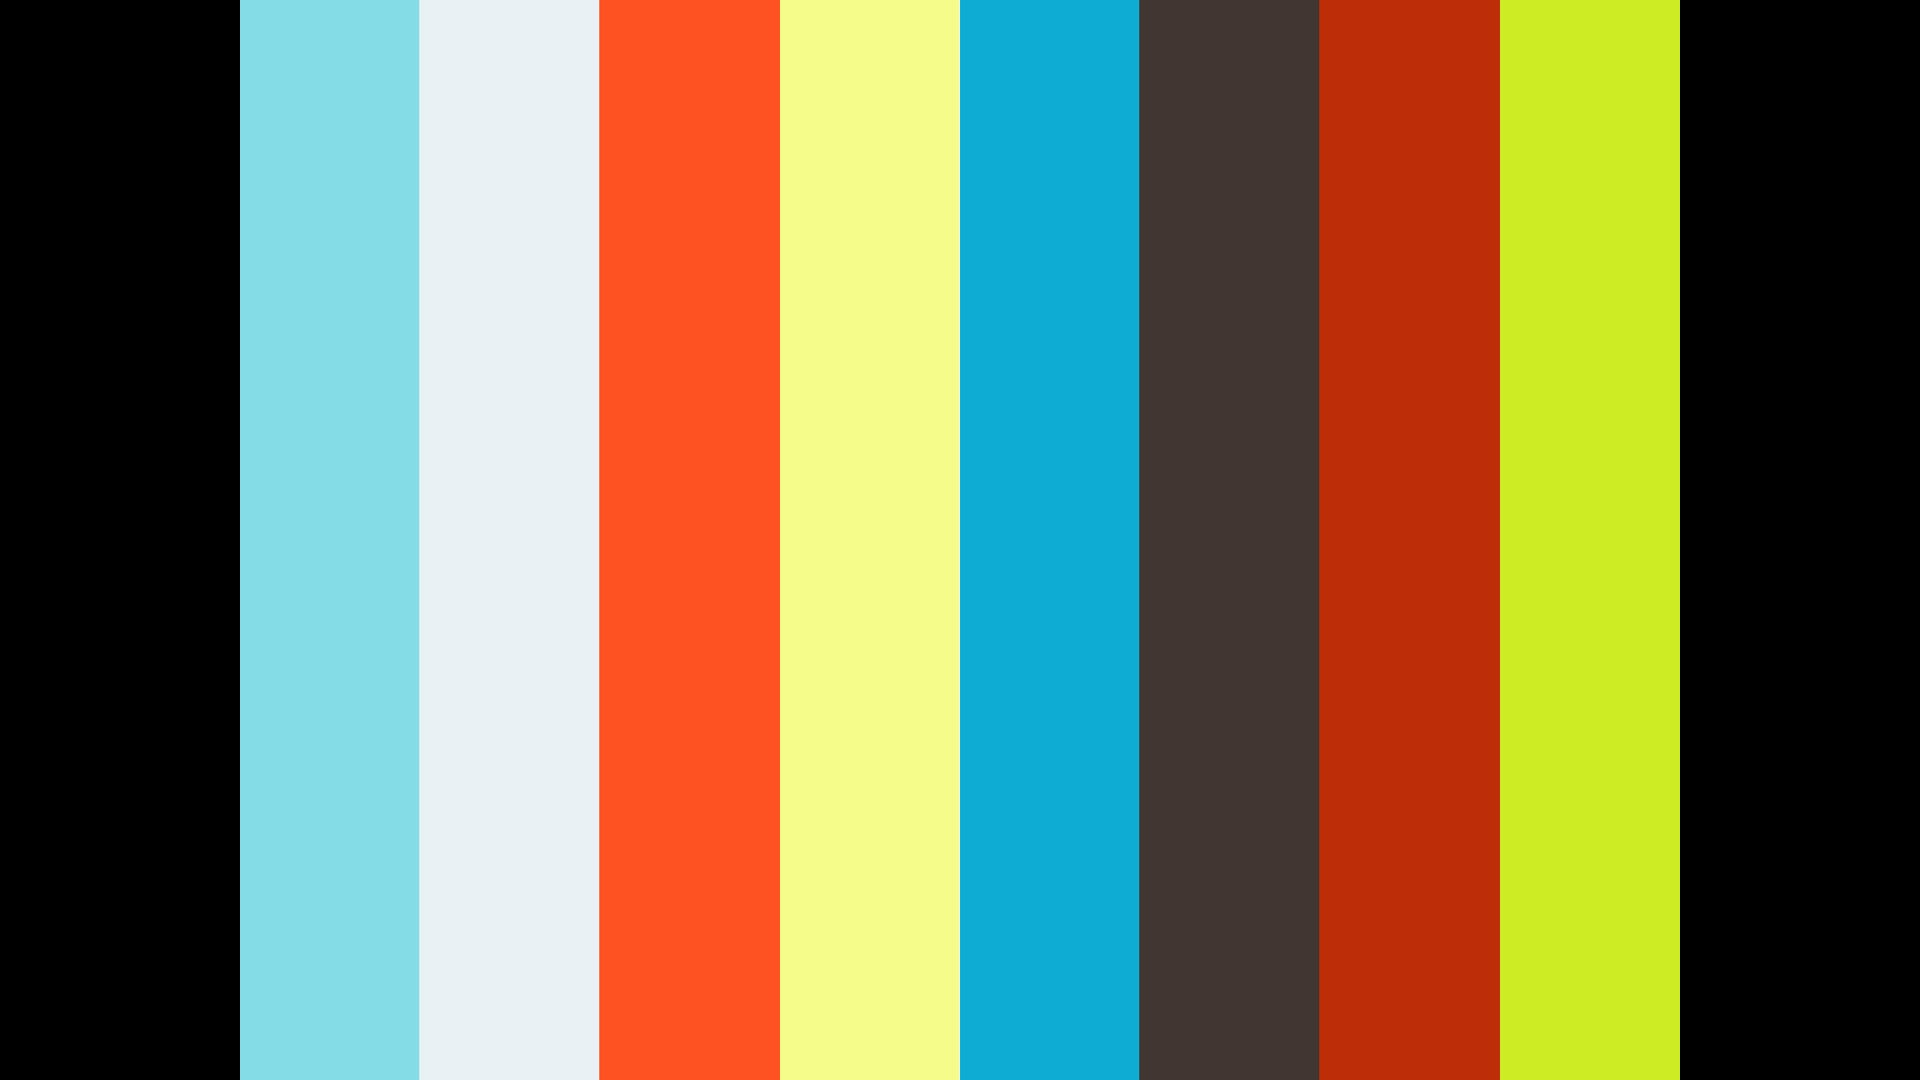 MARATHON NICE CANNES VERSION FINAL BEST OF